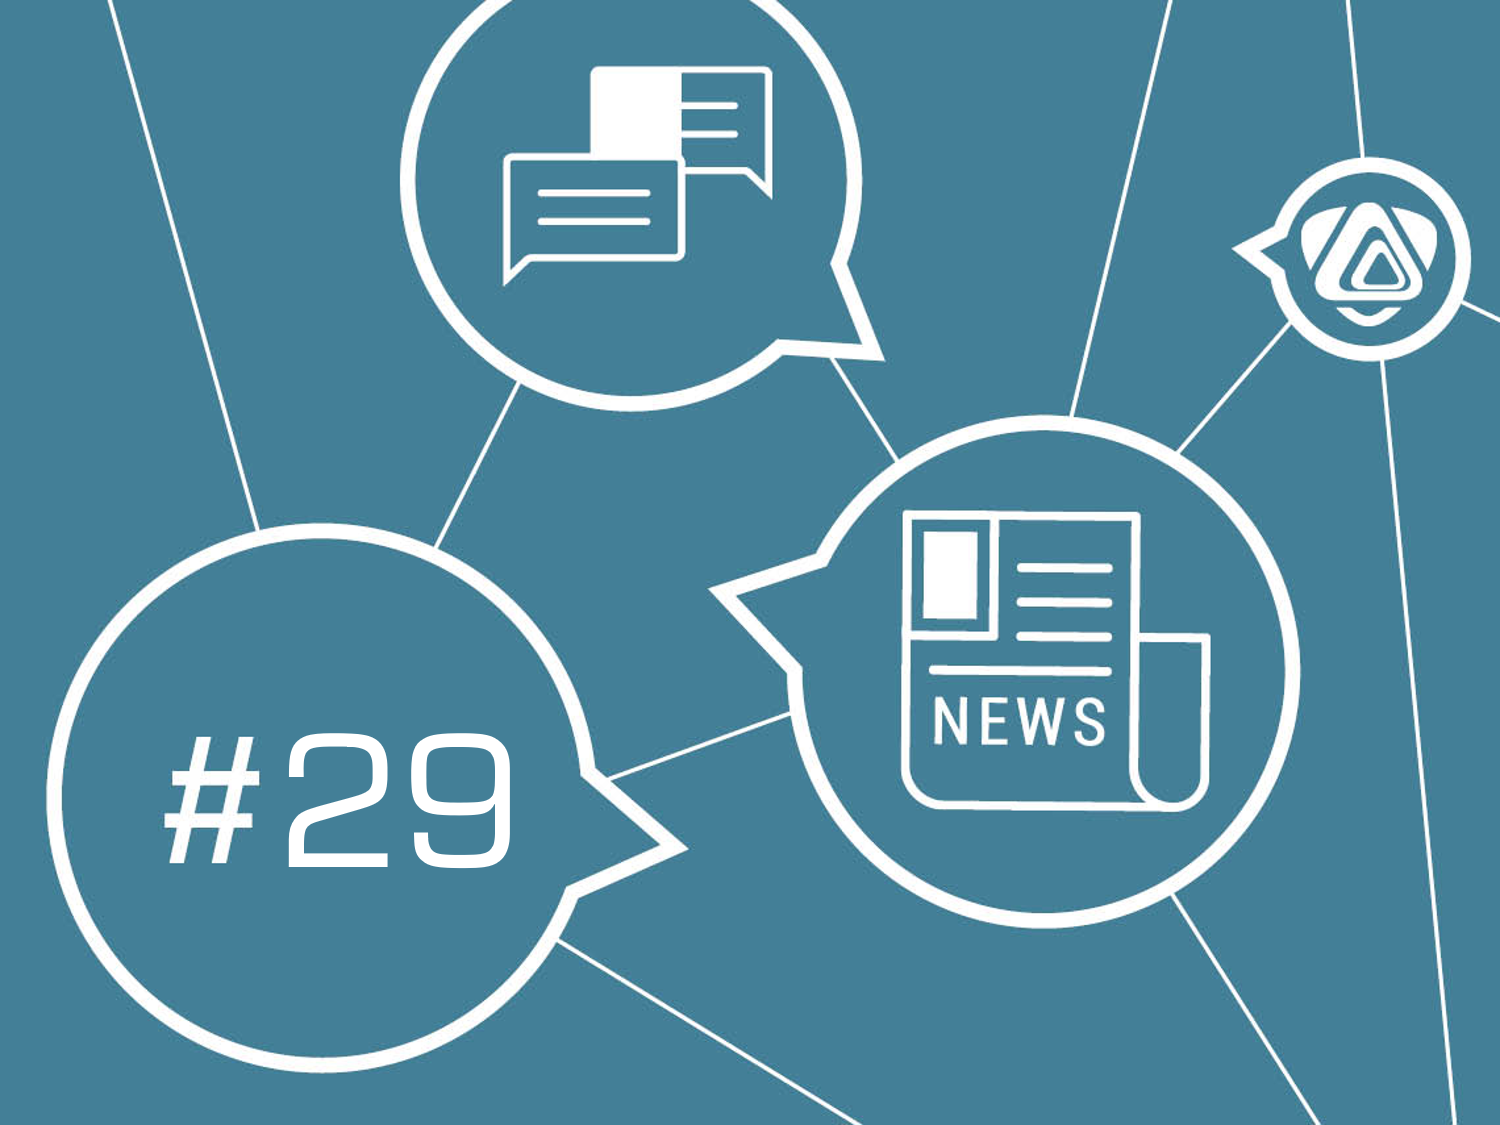 data science news weekly #29